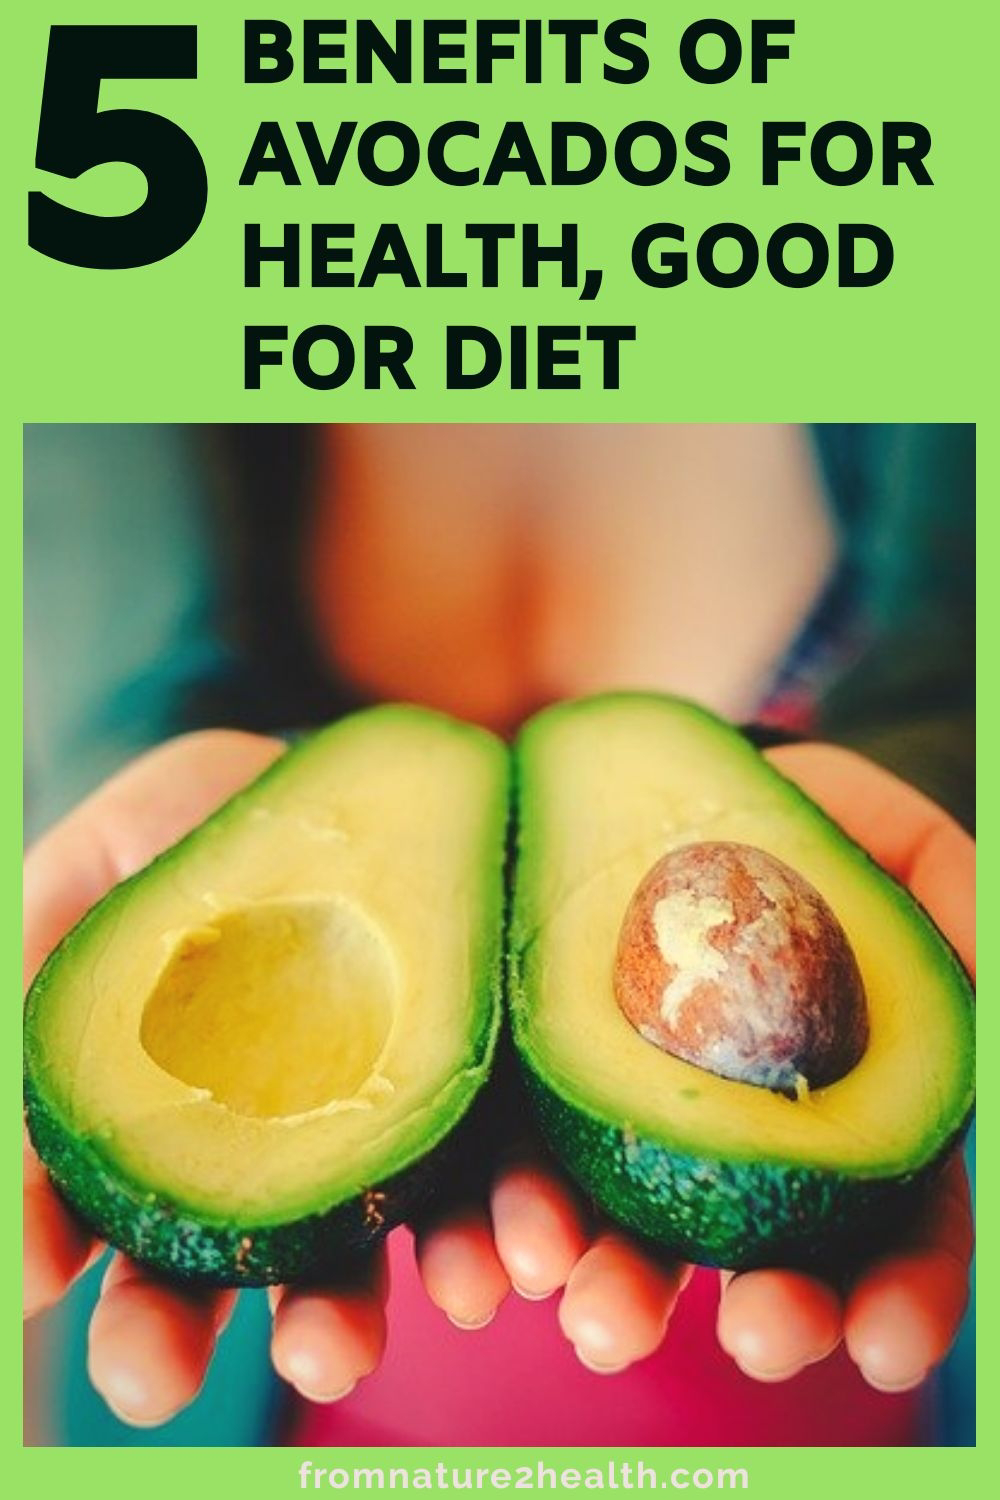 5 Benefits of Avocados for Cancer, Cholesterol, Digestion, Heart Disease